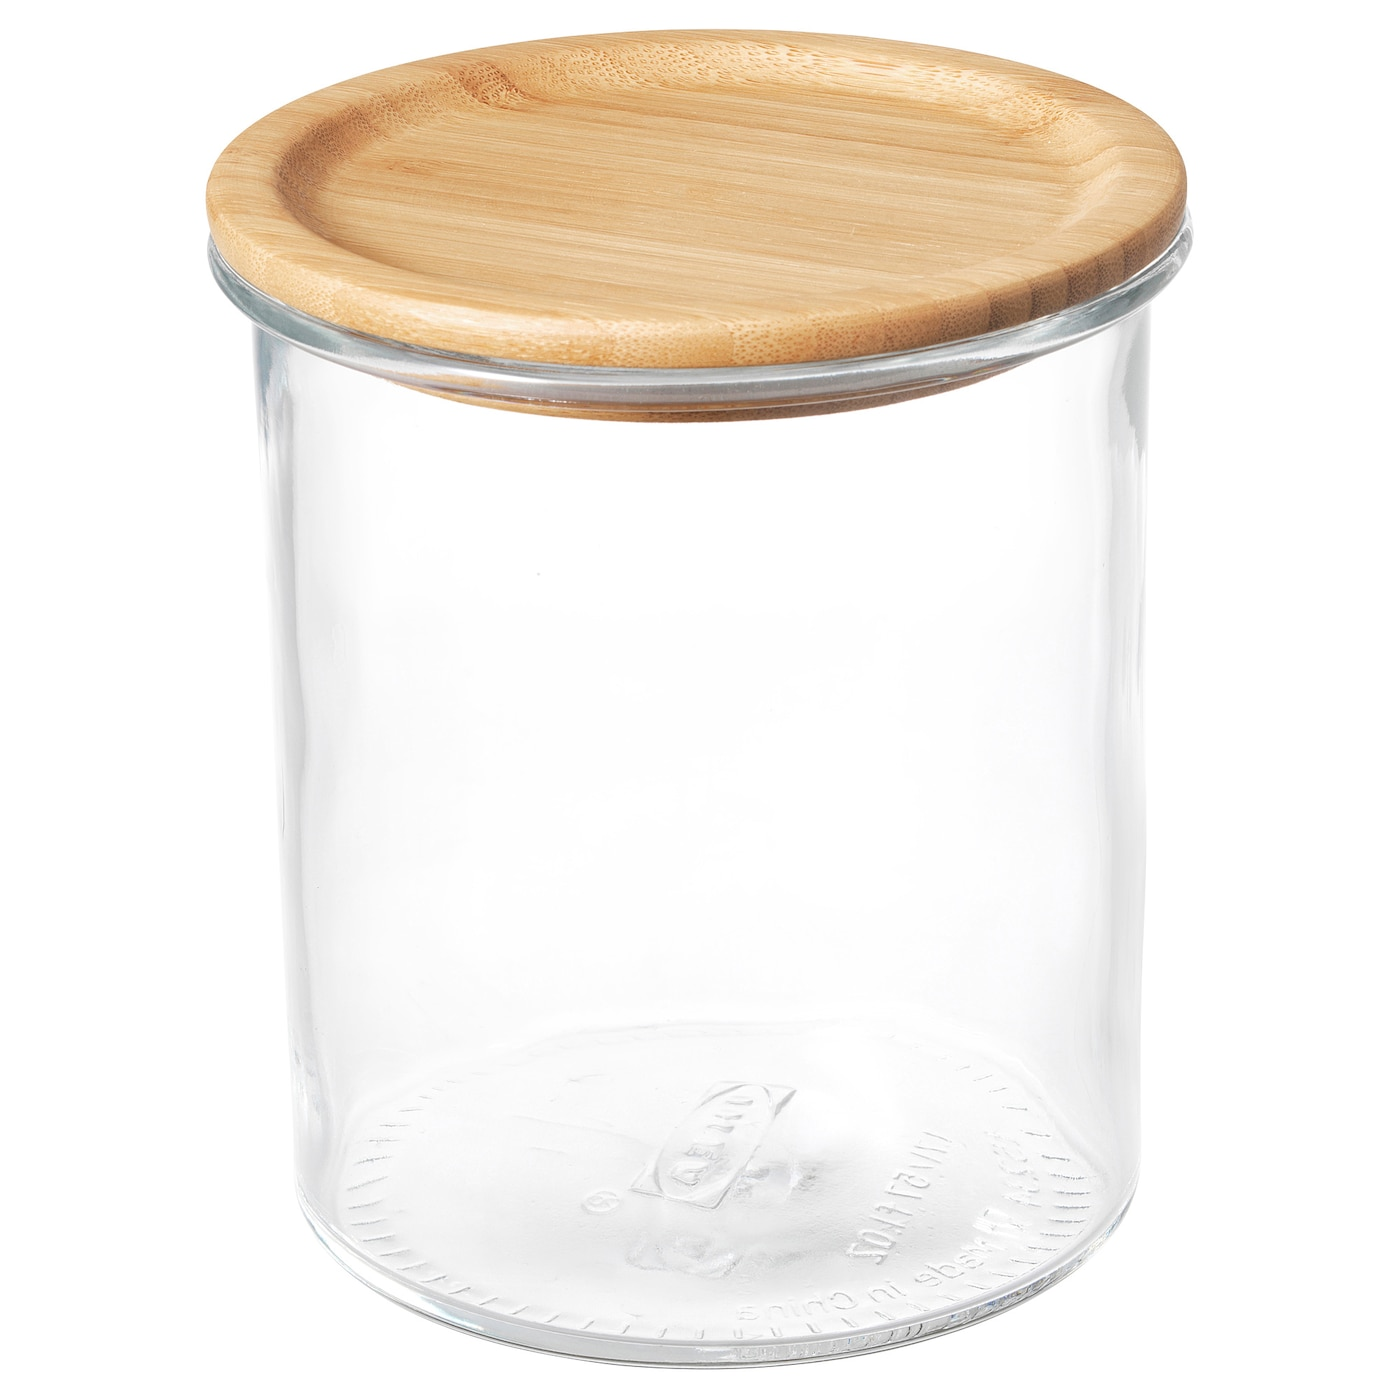 ikea 365 jar with lid glass bamboo 1 7 l ikea. Black Bedroom Furniture Sets. Home Design Ideas